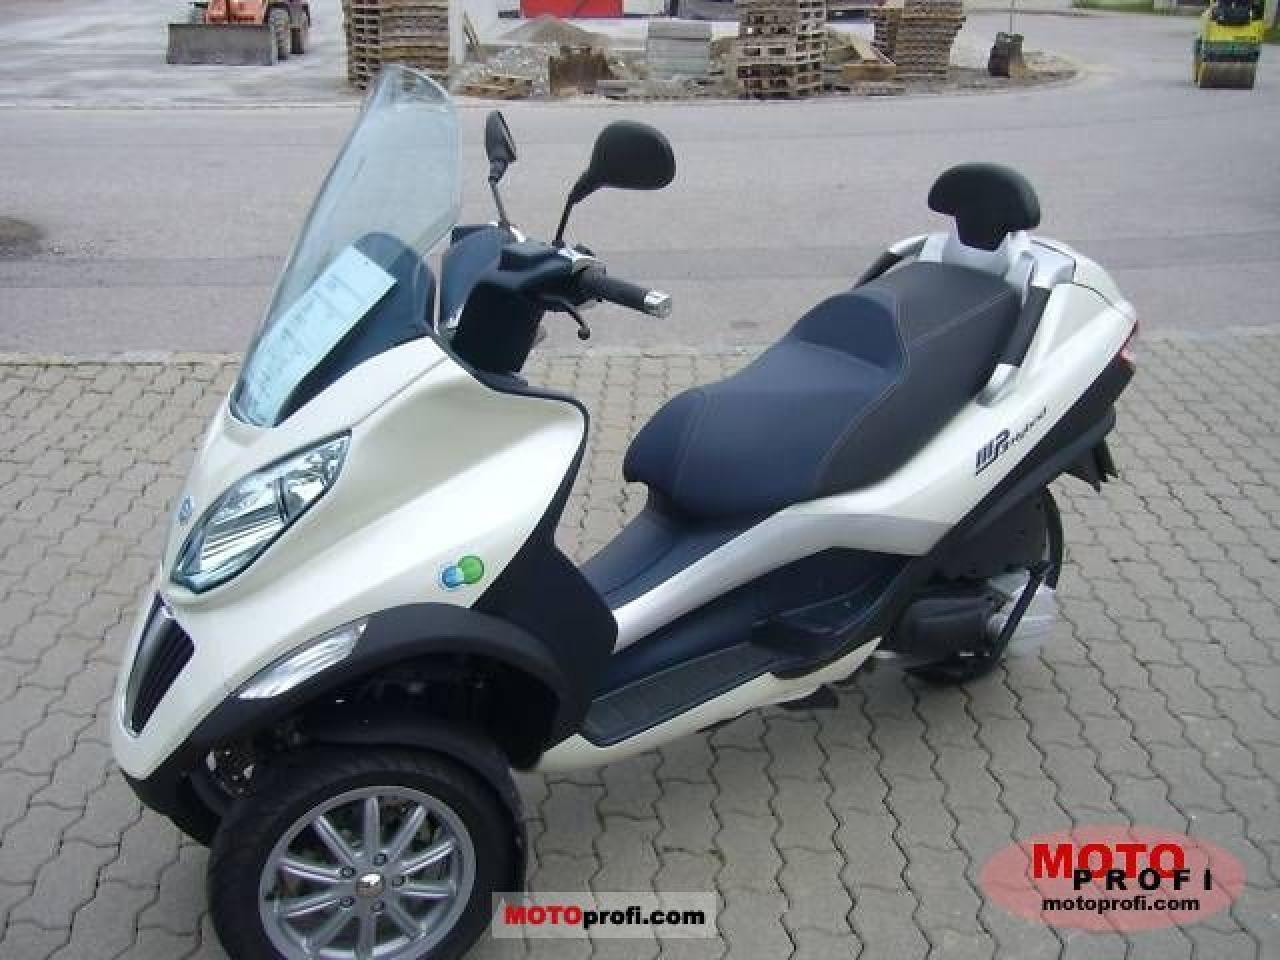 piaggio mp3 125 hybrid pics specs and list of seriess by year. Black Bedroom Furniture Sets. Home Design Ideas